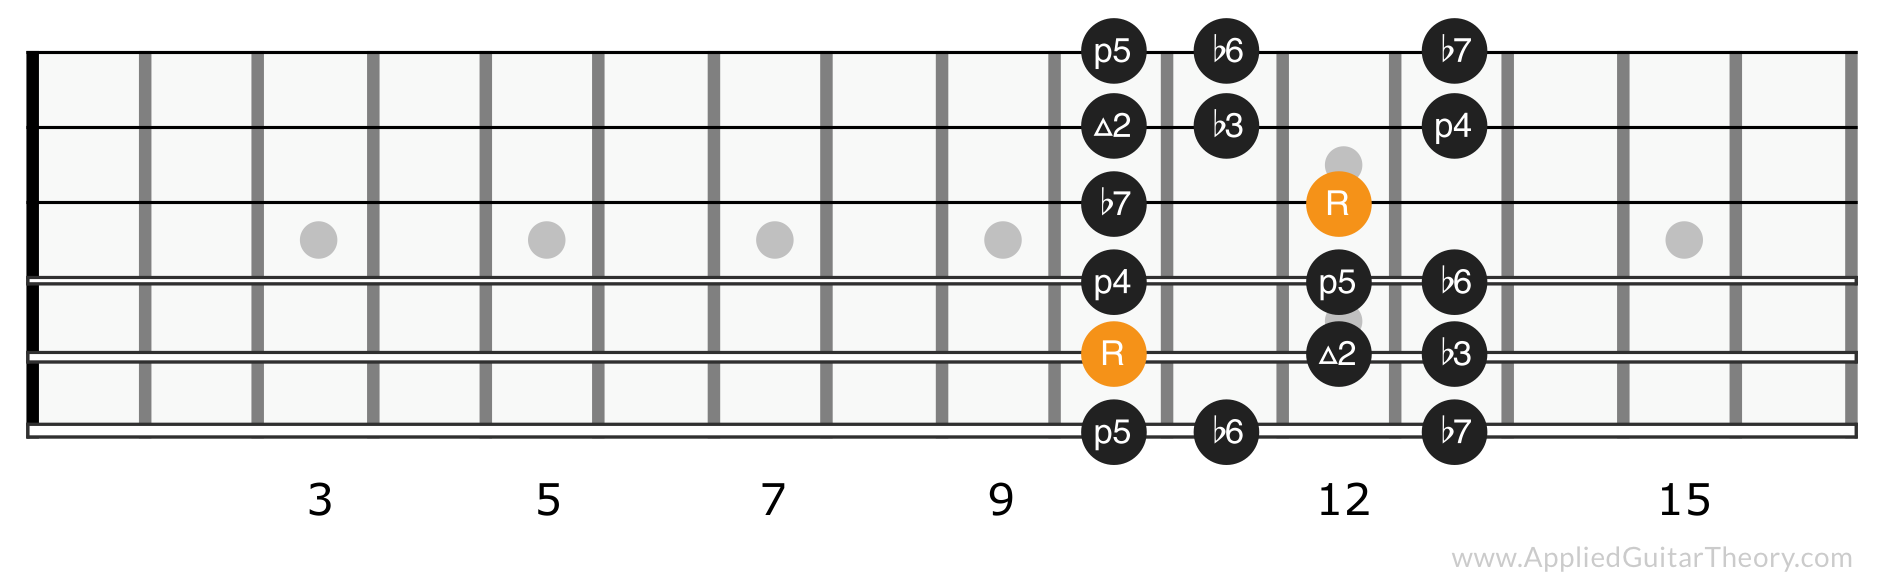 Minor scale position 4